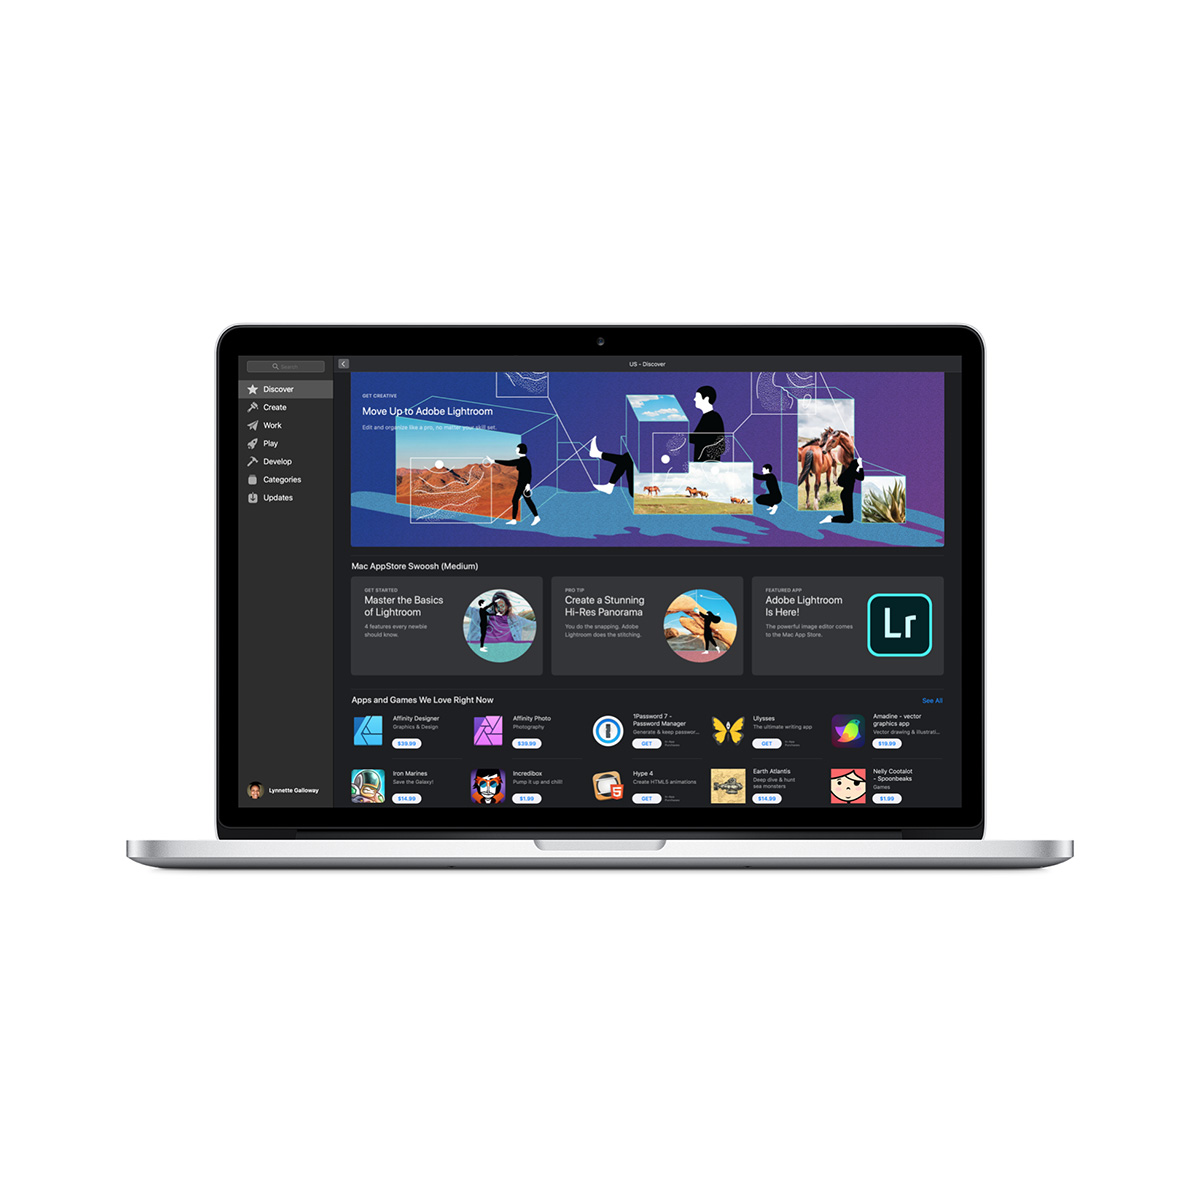 Adobe Lightroom is now available on Apple's Mac App Store